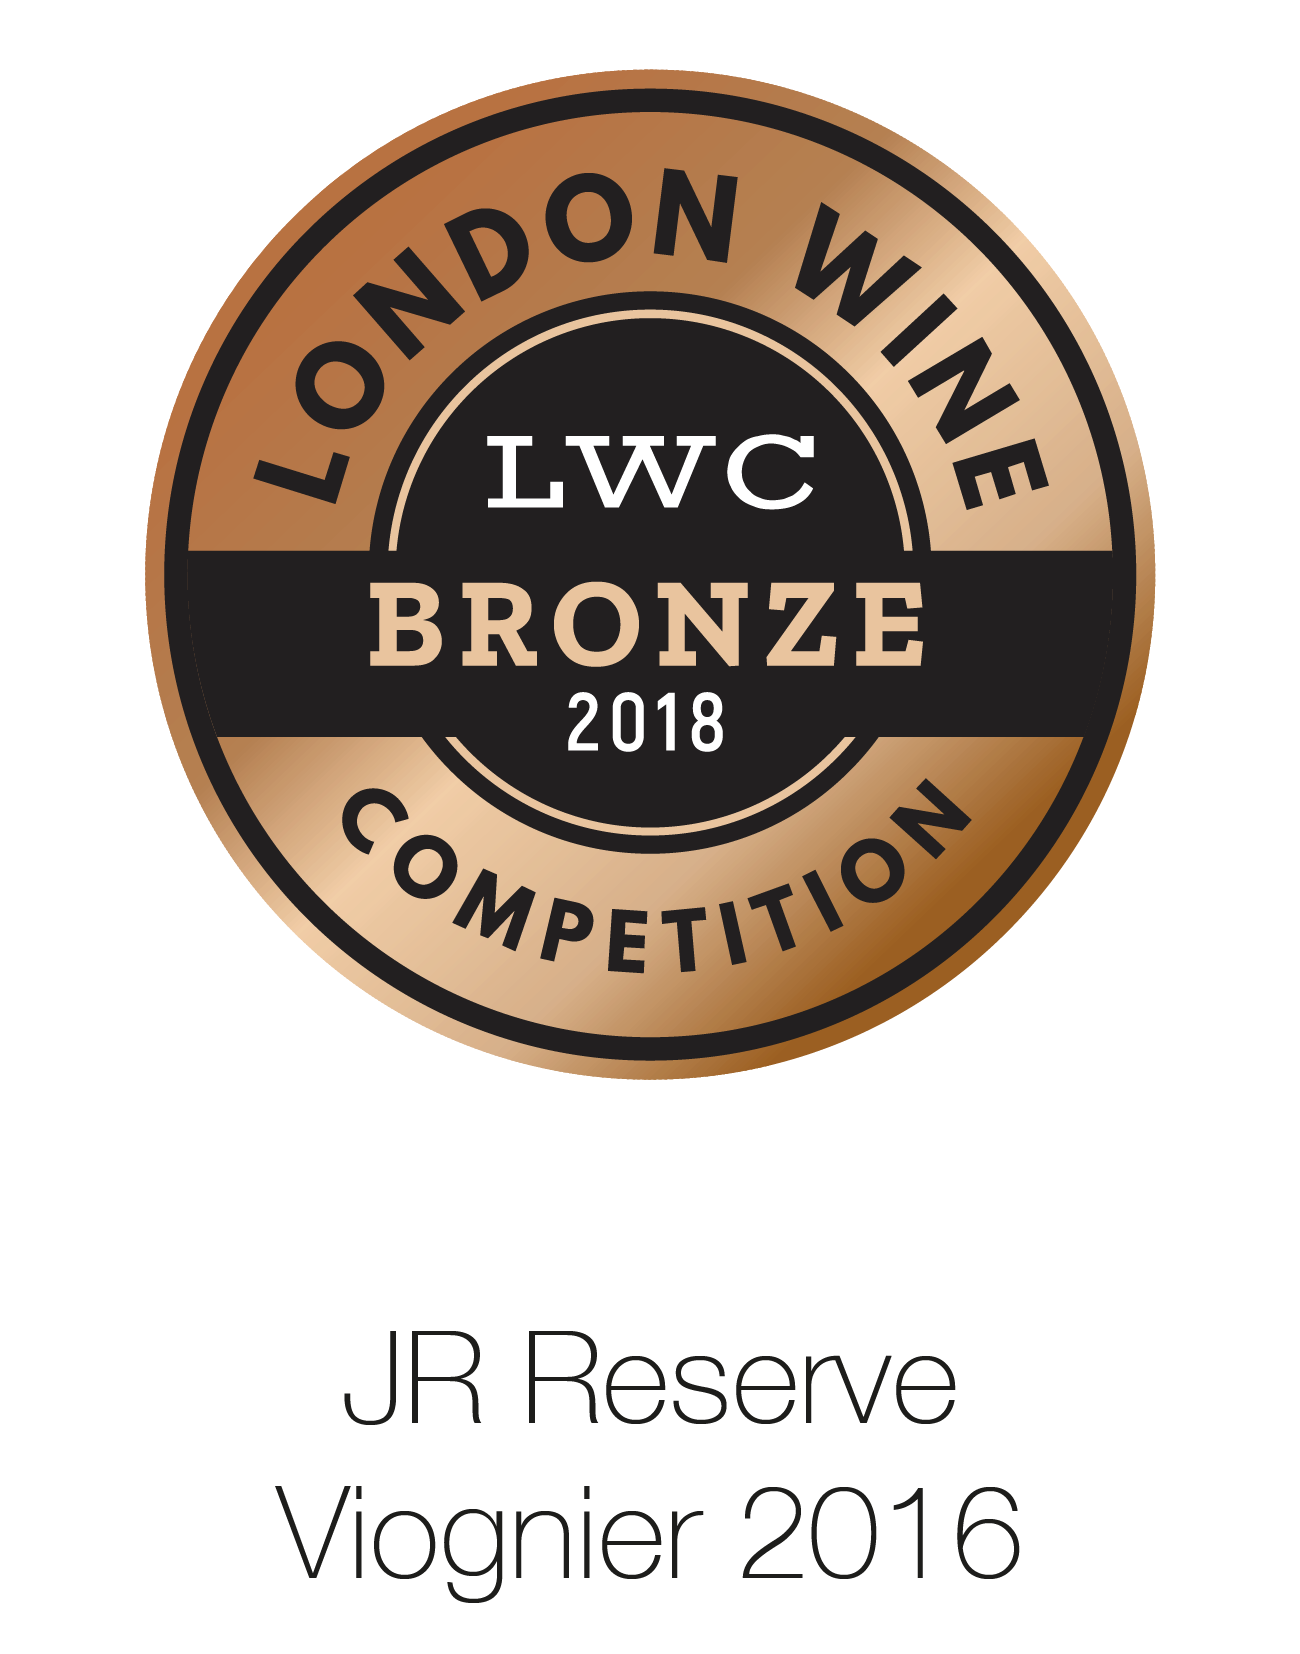 JR Reserve - Viognier 2016 - London Wine Competition 2018